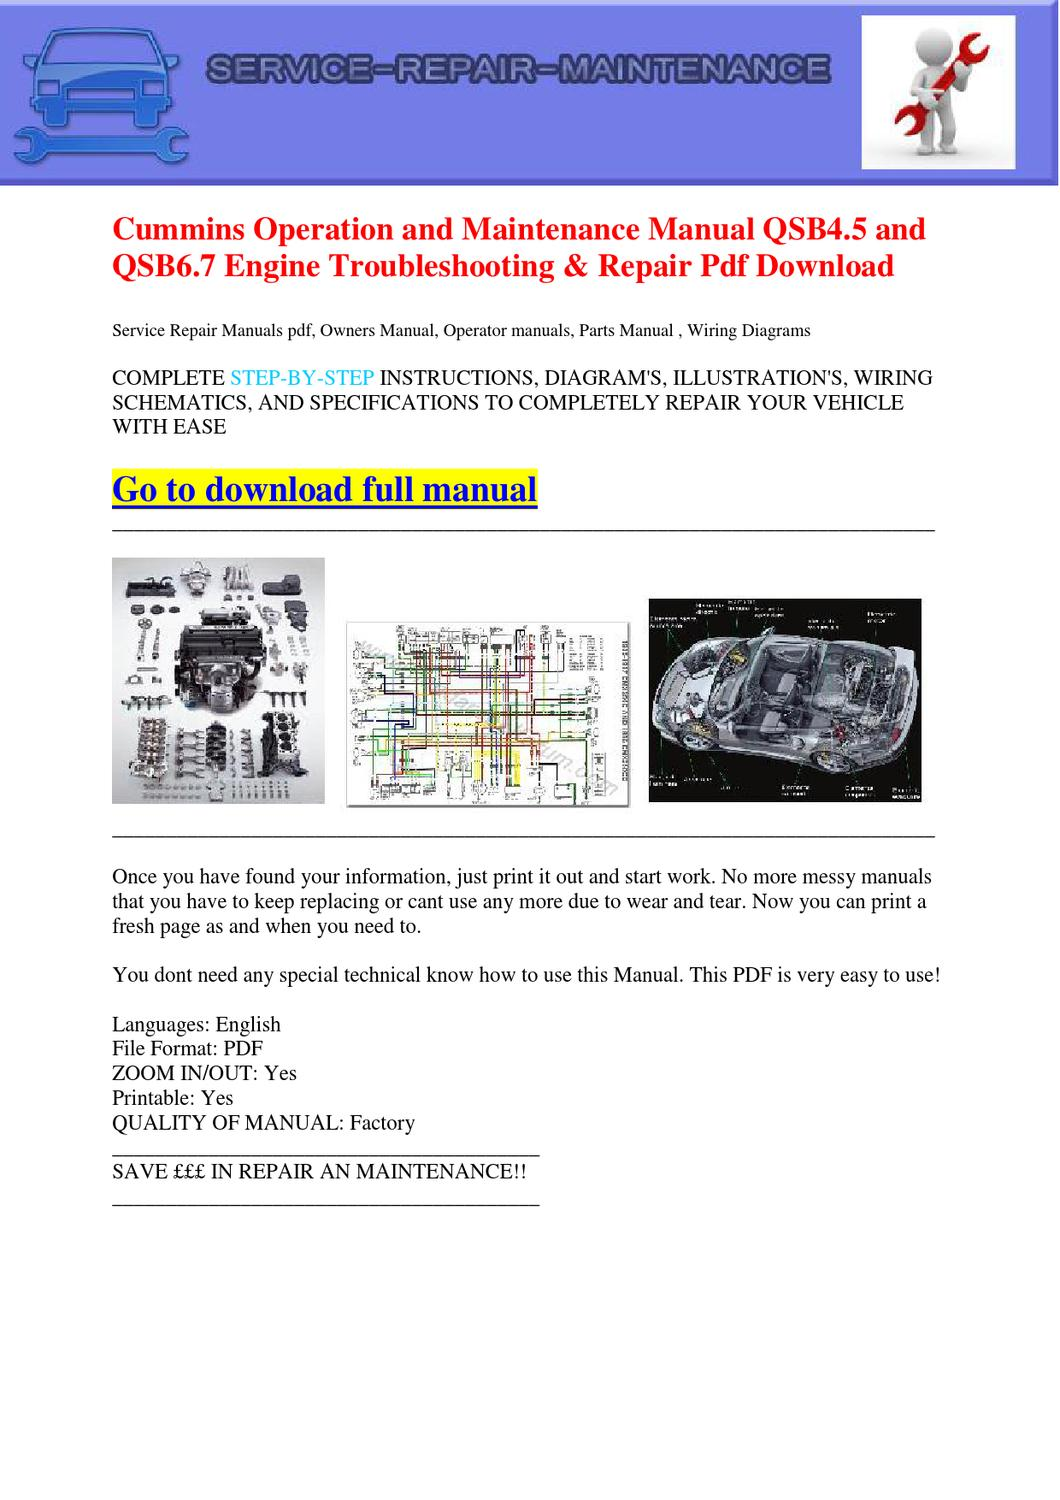 Cummins Operation and Maintenance Manual QSB4.5 and QSB6.7 Engine  Troubleshooting & Repair Pdf Downl by Dernis Castan - issuu